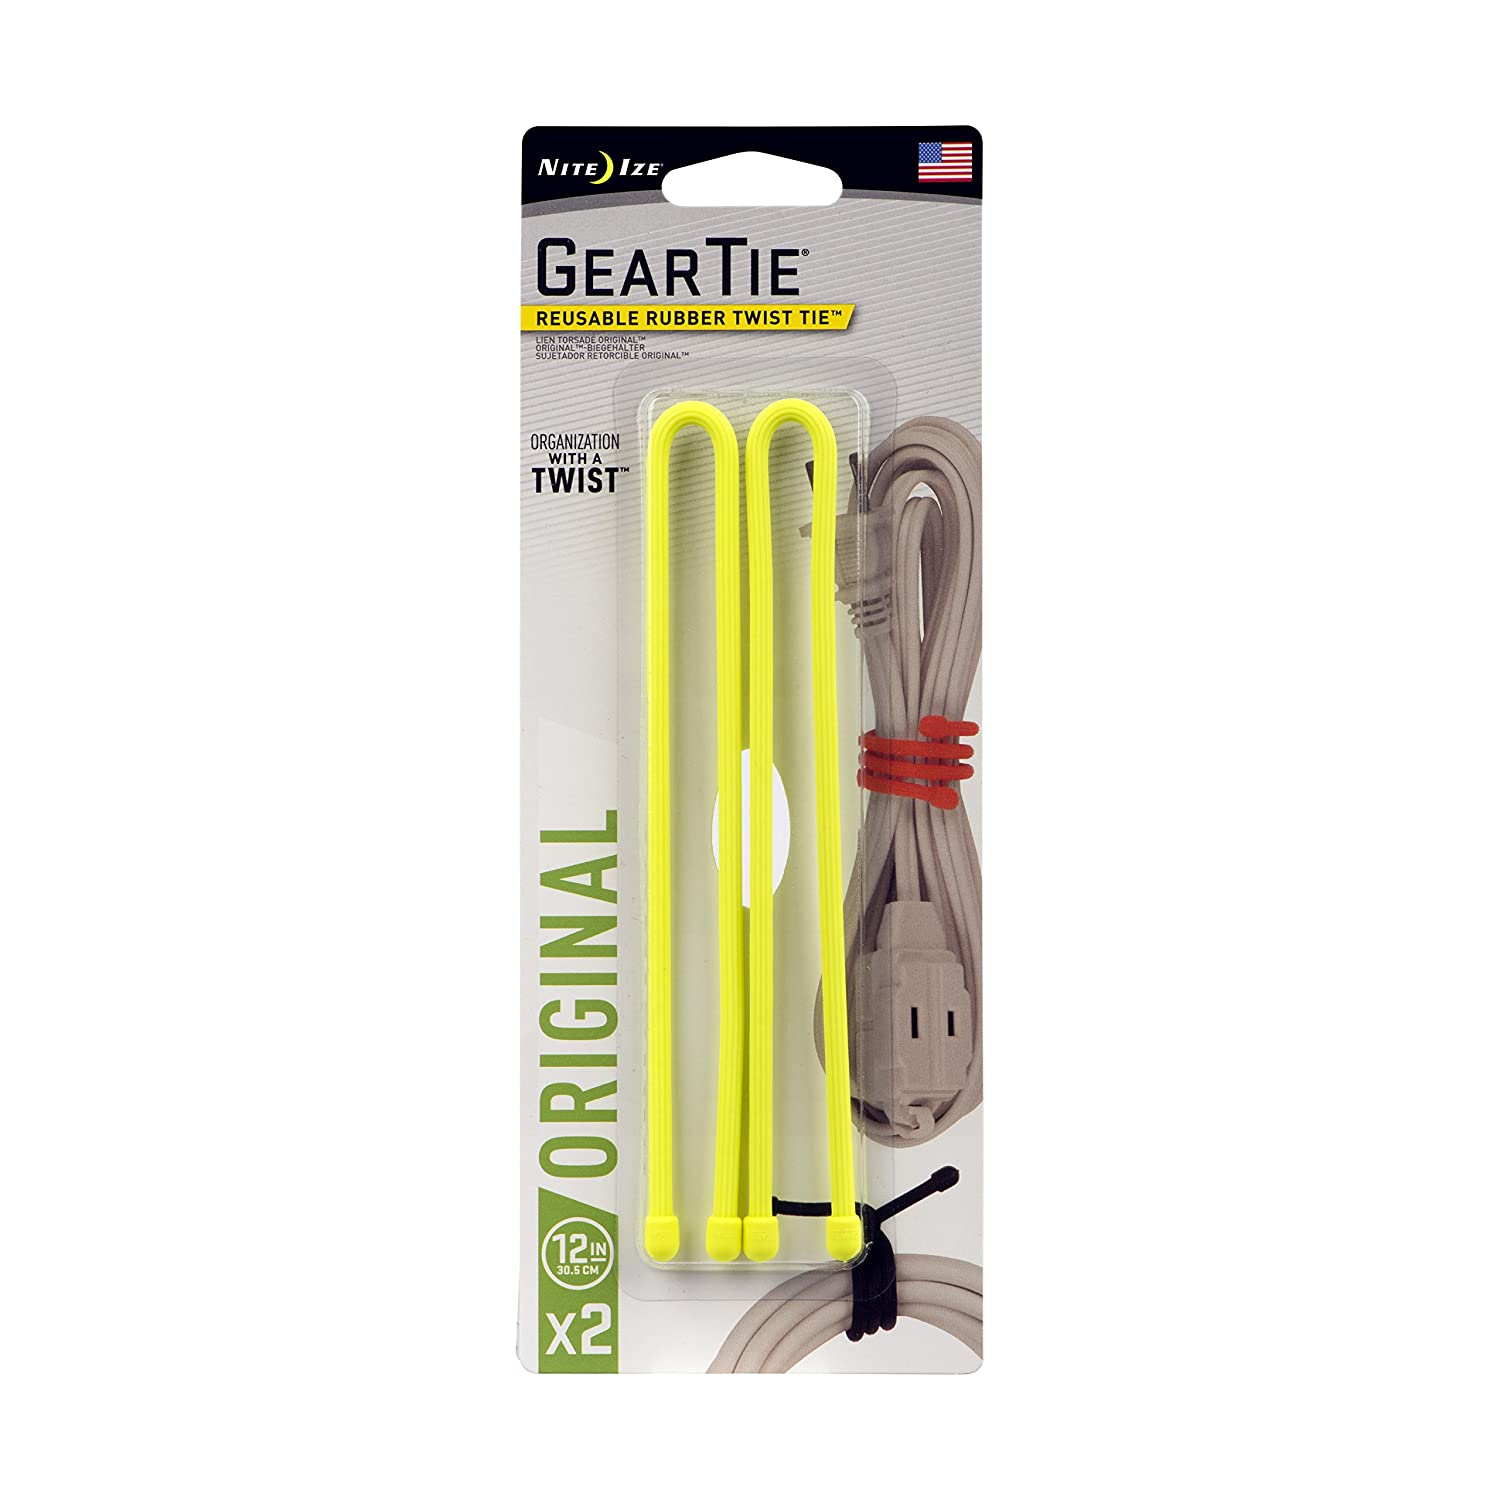 Nite Ize Original Gear Tie, Reusable Rubber Twist Tie, 12-Inch, Neon Yellow, 2 Pack, Made in the USA - - Amazon.com